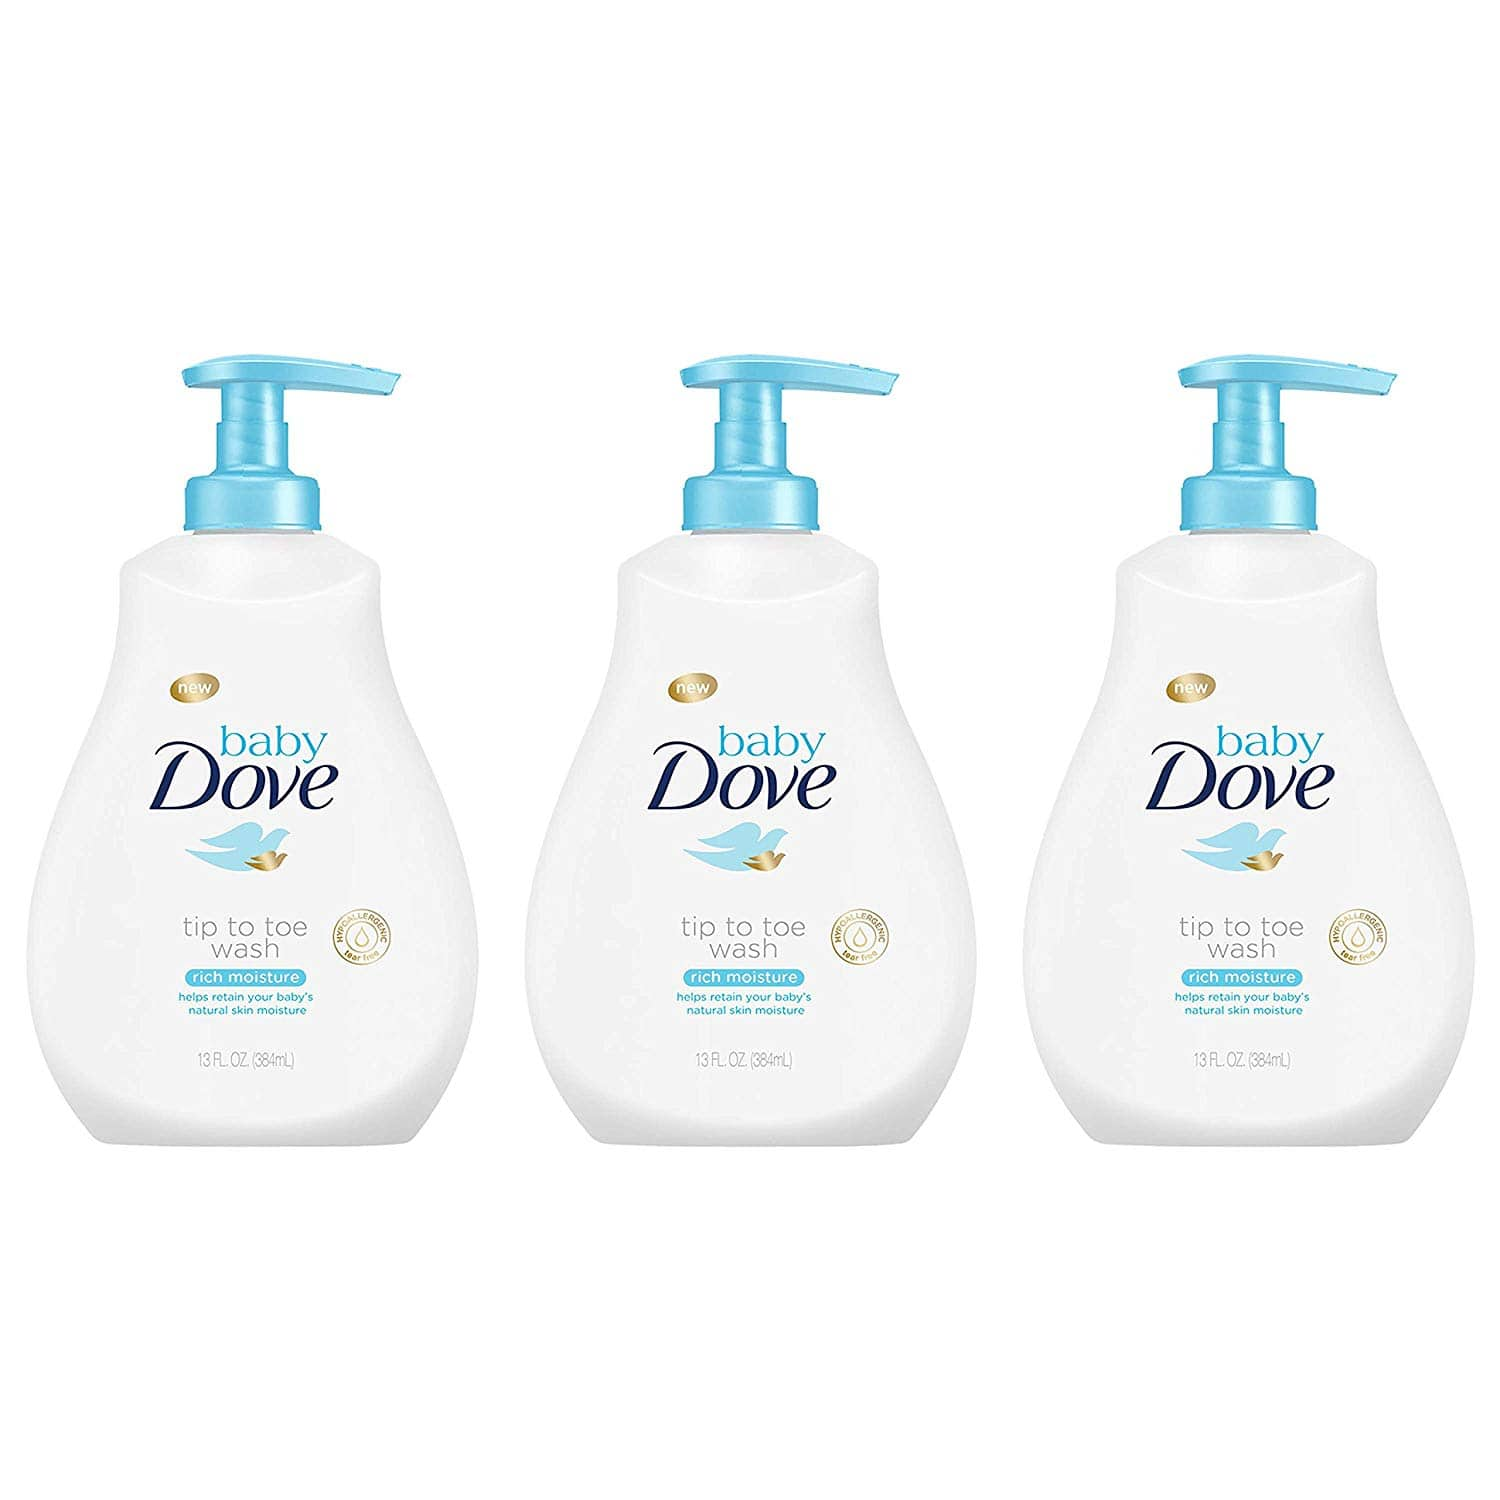 Baby Dove Rich Moisture Tip to Toe Baby Wash and Shampoo 13 Fl Oz (Pack of 3): As low as $10.52 w/S&S and A/c